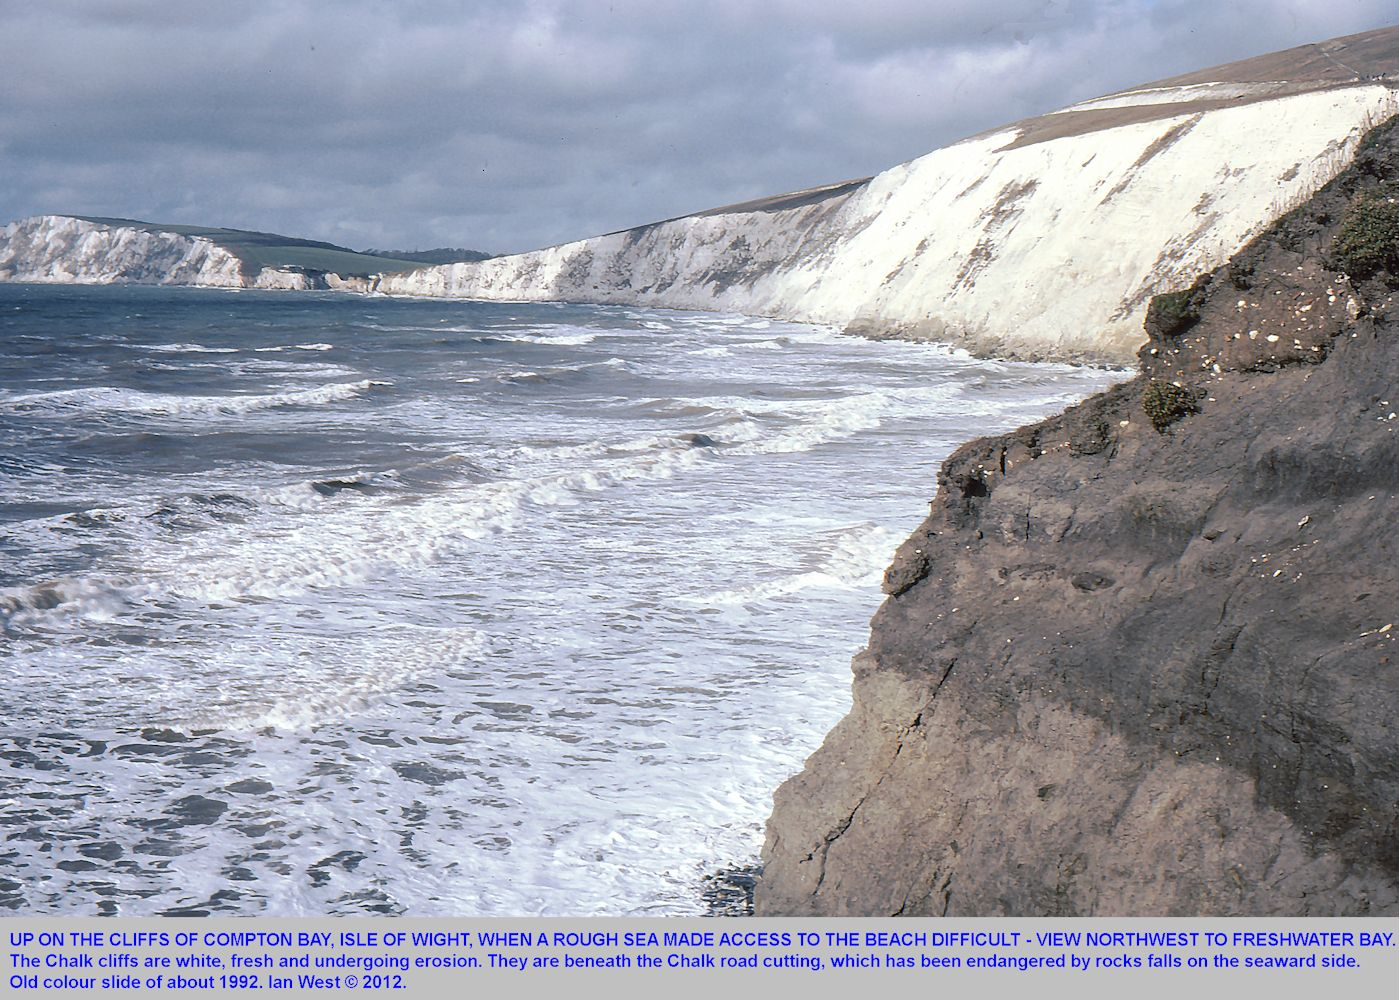 Chalk cliffs at Compton Bay, Isle of Wight, in the early 1990s